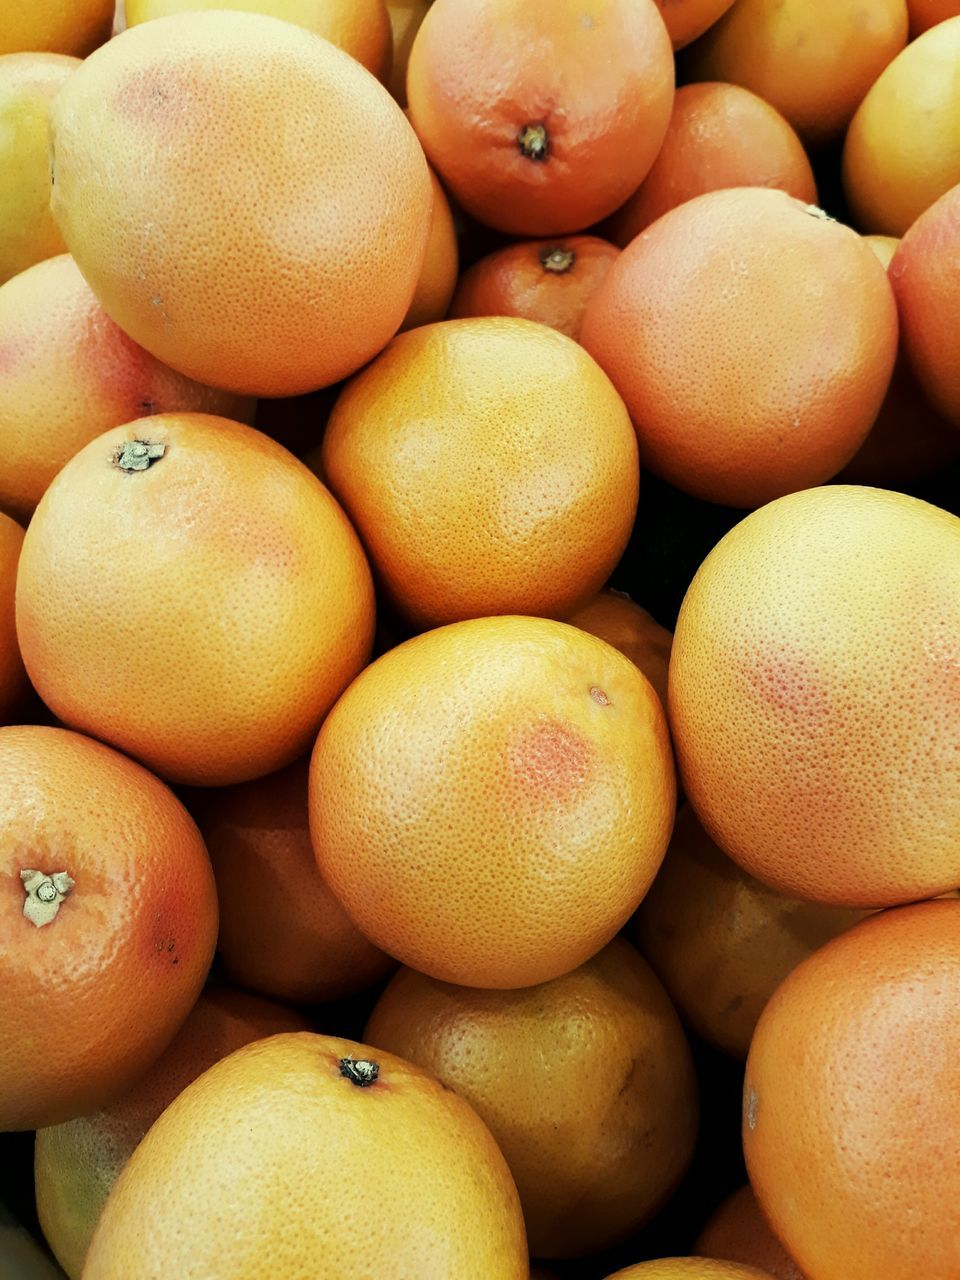 fruit, healthy eating, food and drink, freshness, retail, food, abundance, market, large group of objects, full frame, for sale, backgrounds, citrus fruit, market stall, consumerism, no people, farmer market, close-up, day, healthy lifestyle, outdoors, supermarket